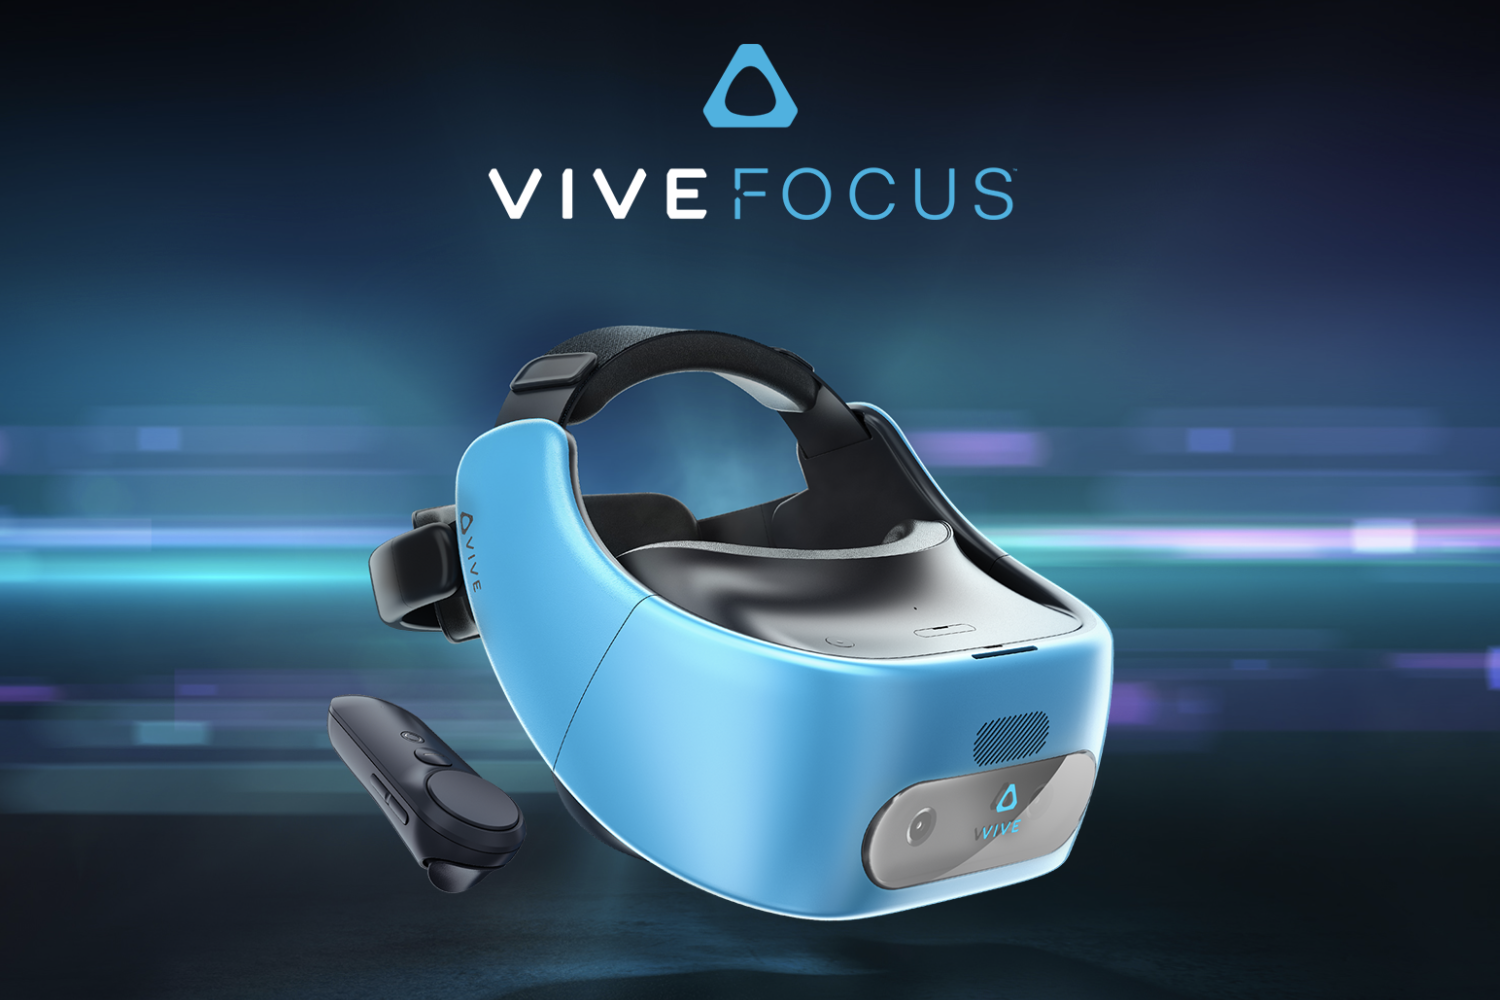 The HTC Vive Focus Doesn't Need A PC Or Mobile To Work